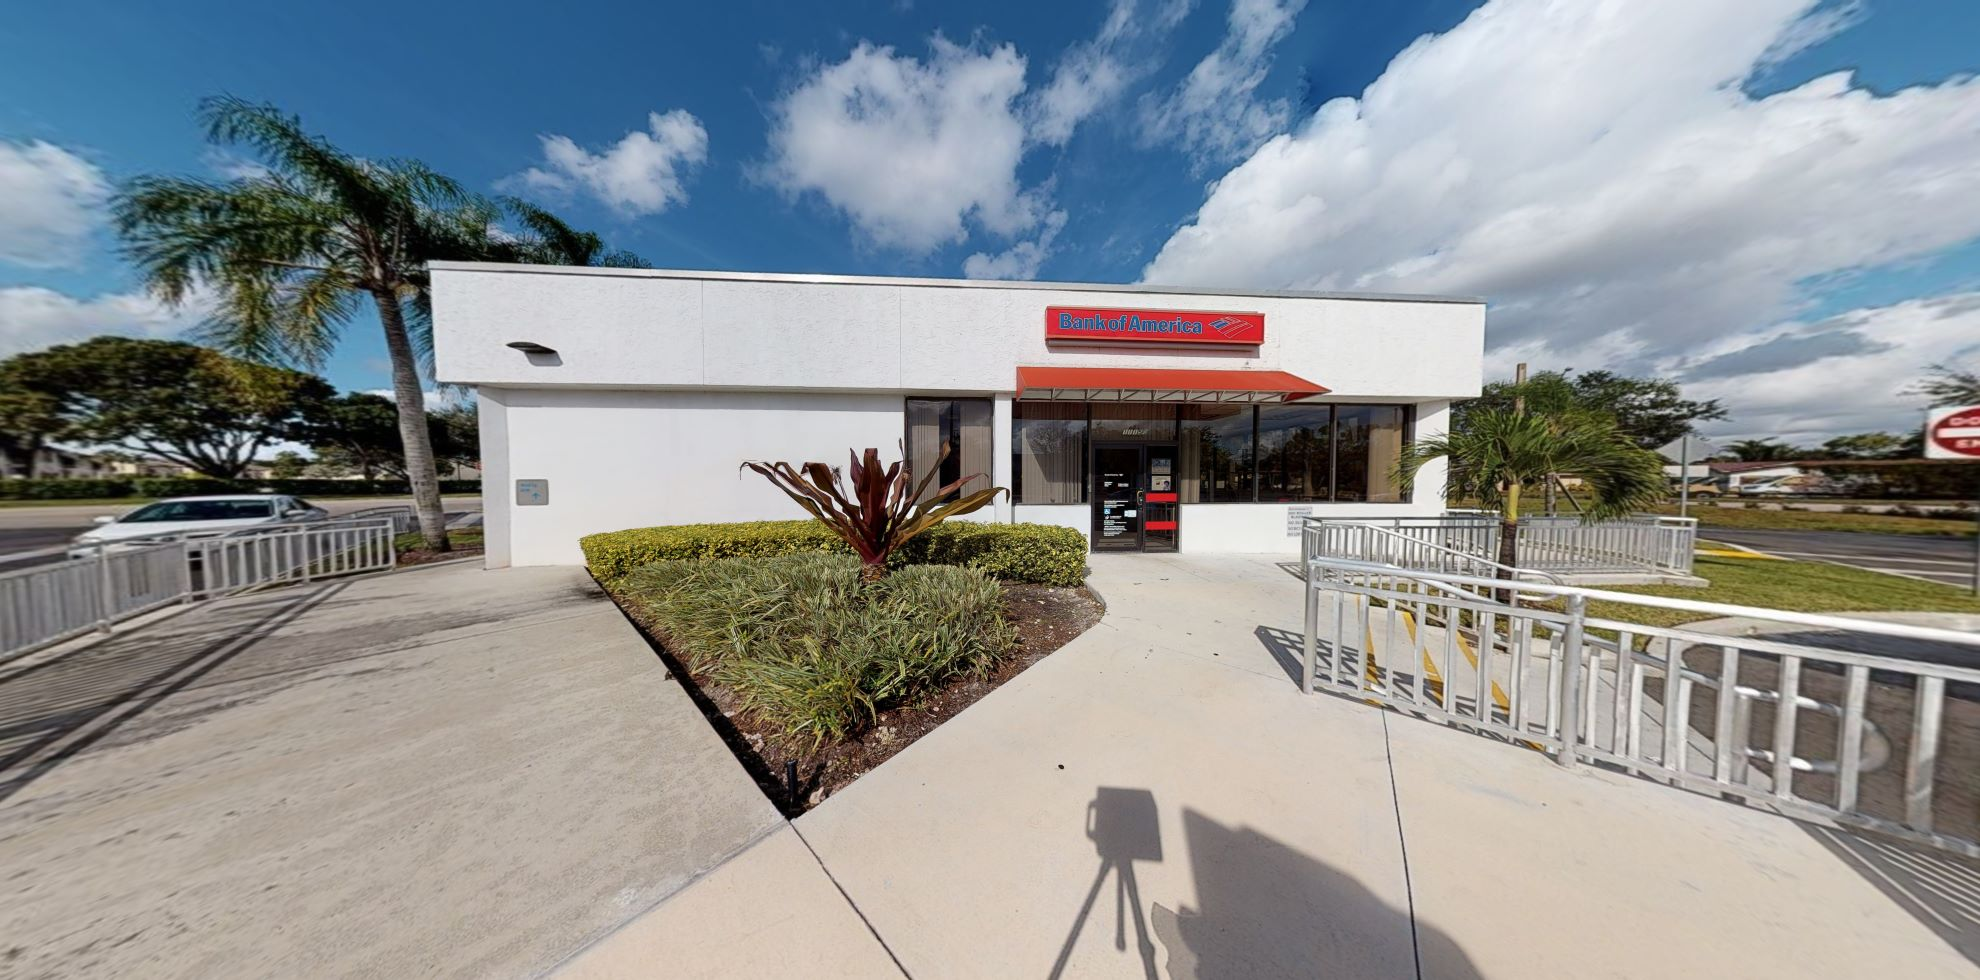 Bank of America financial center with drive-thru ATM | 11150 Taft St, Pembroke Pines, FL 33026